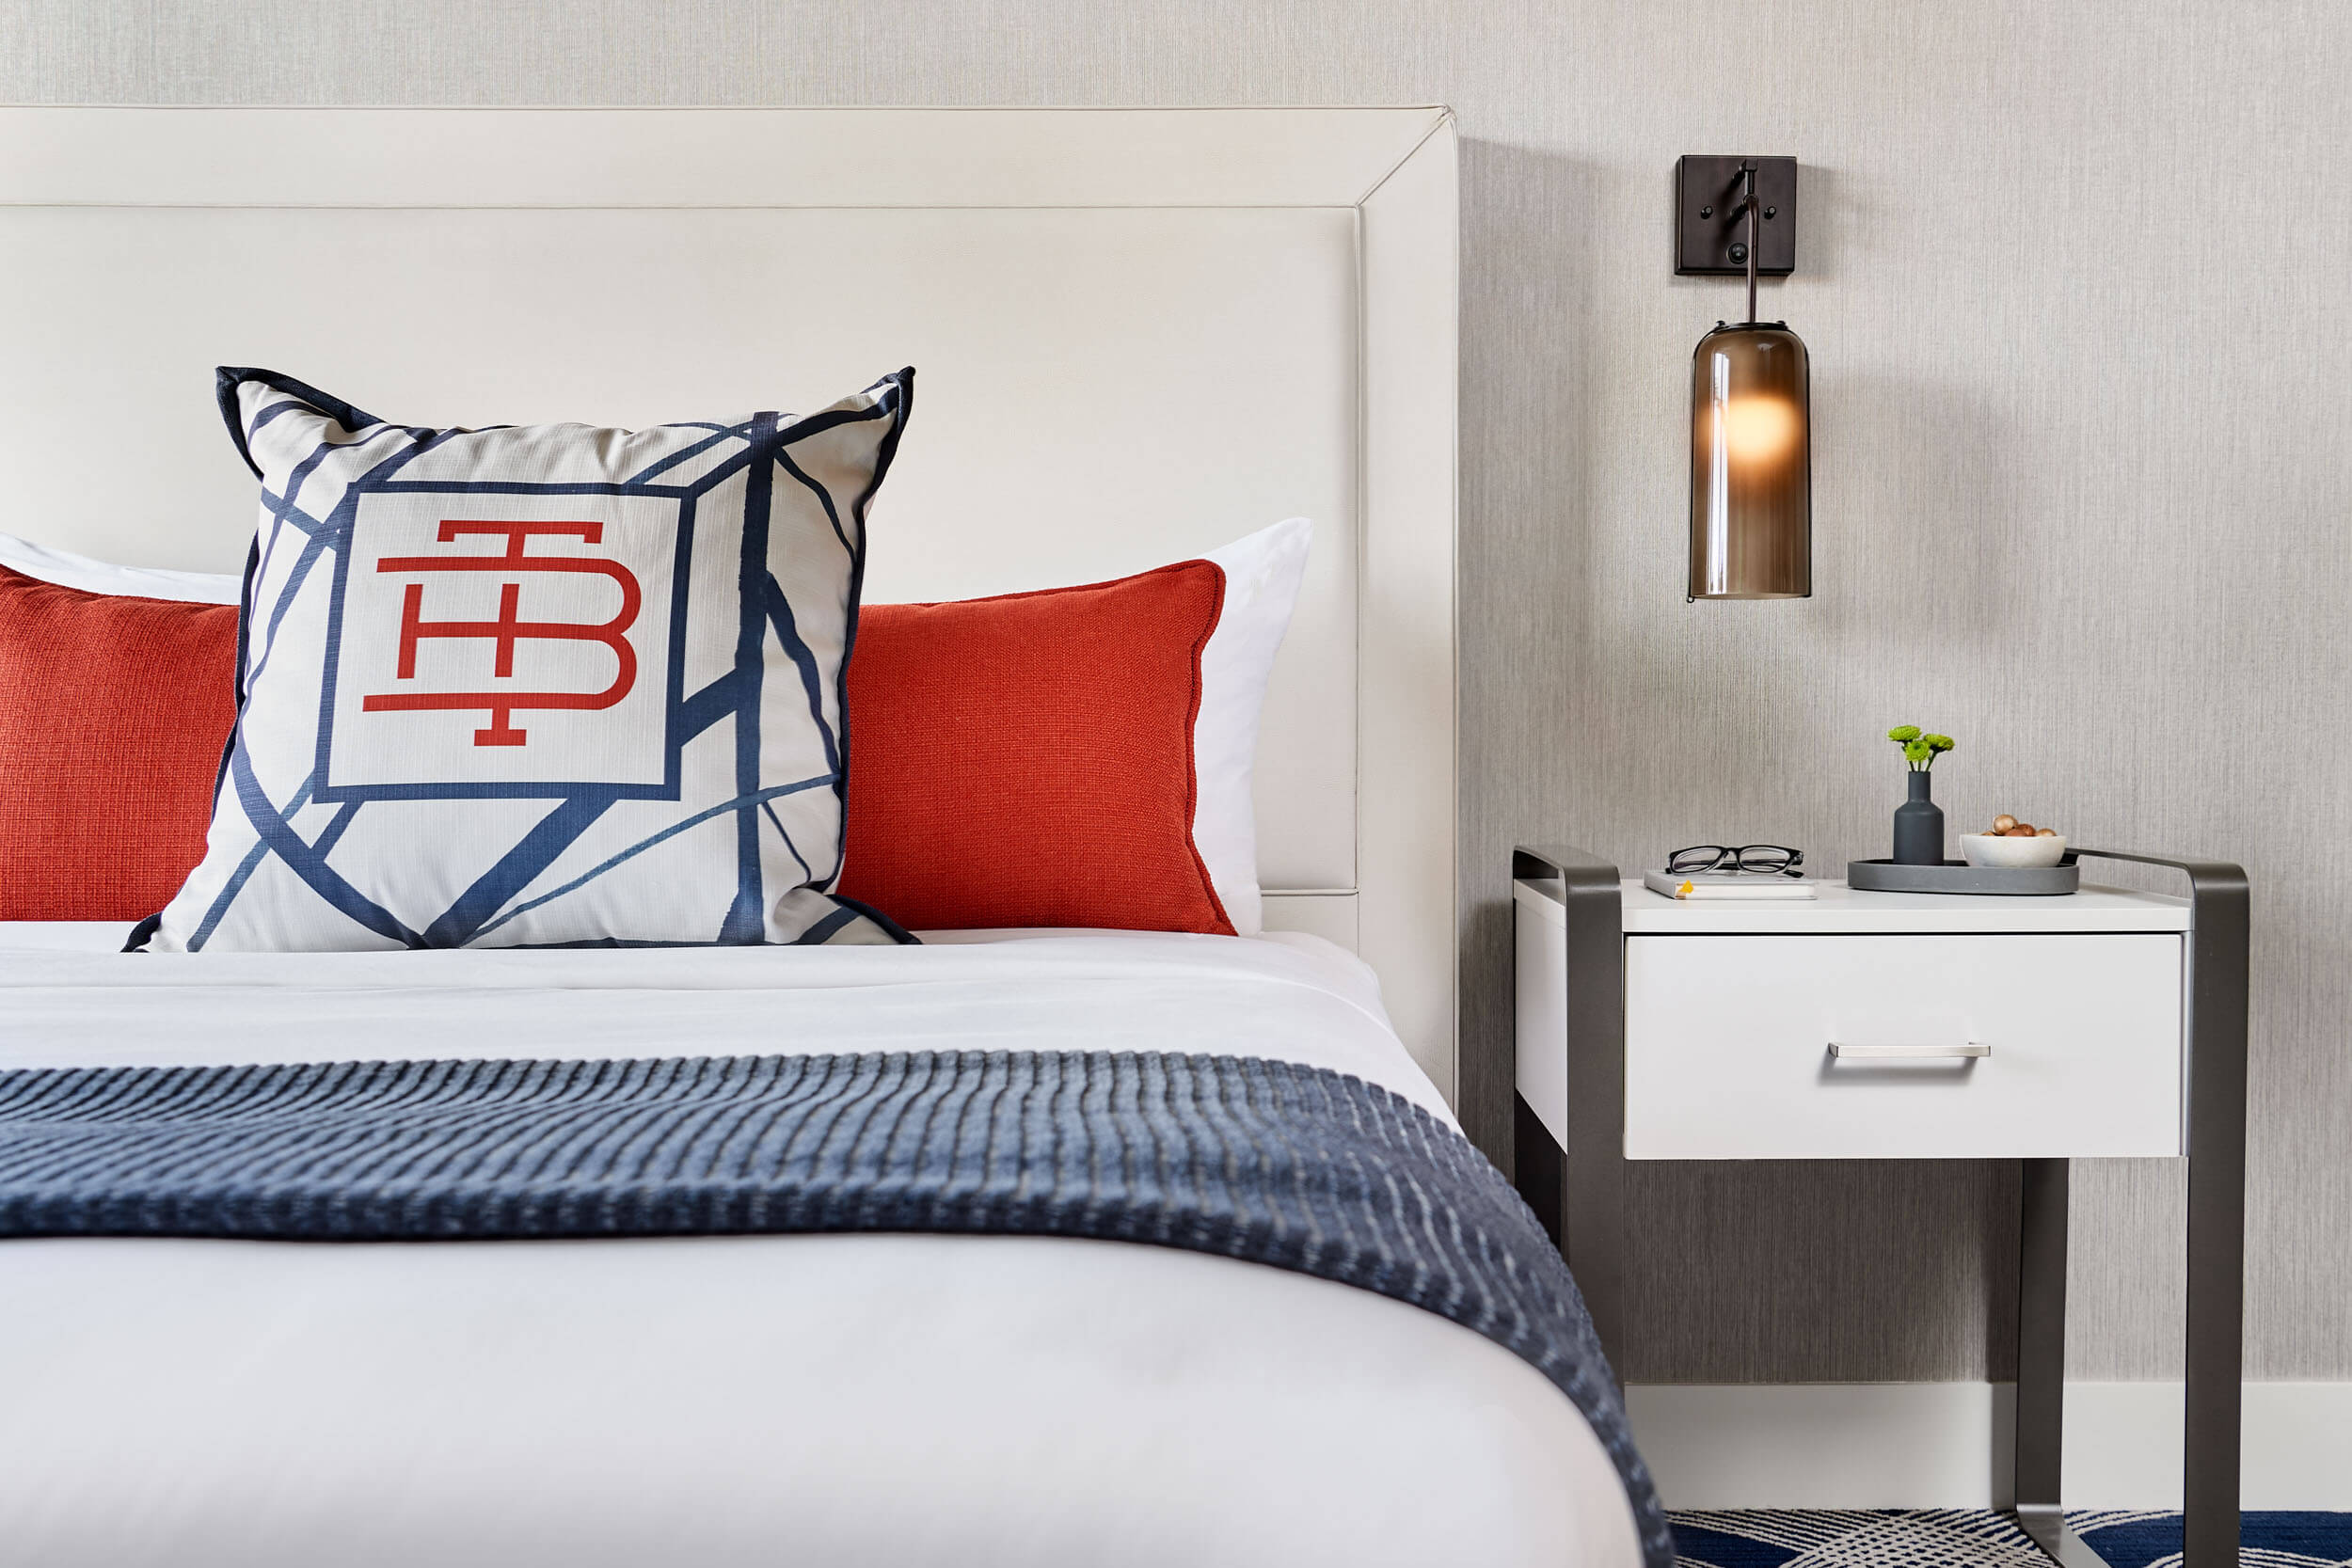 a modern hotel room with blue and red furnishings